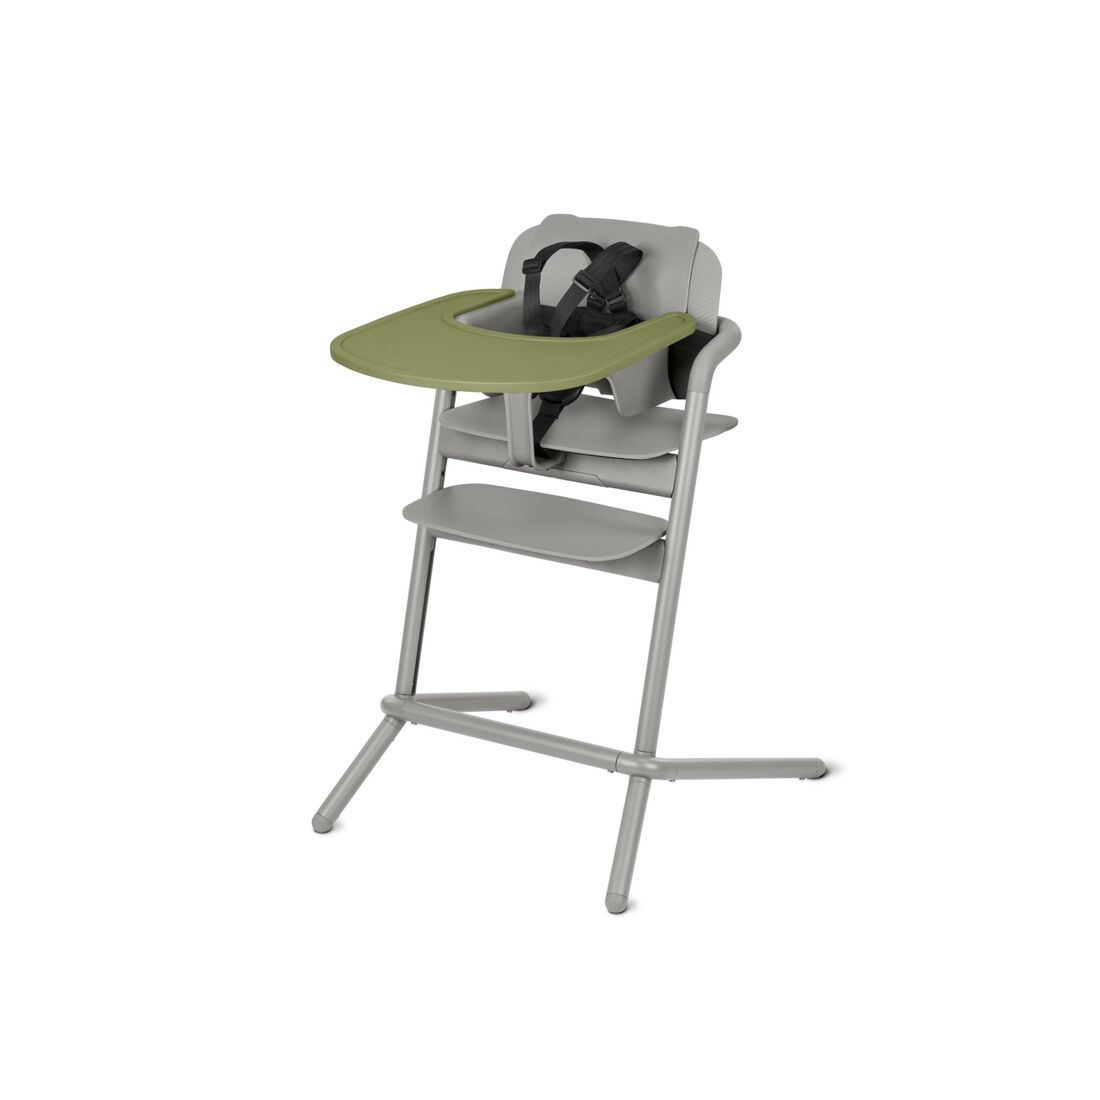 CYBEX Lemo Tray - Outback Green in Outback Green large image number 1